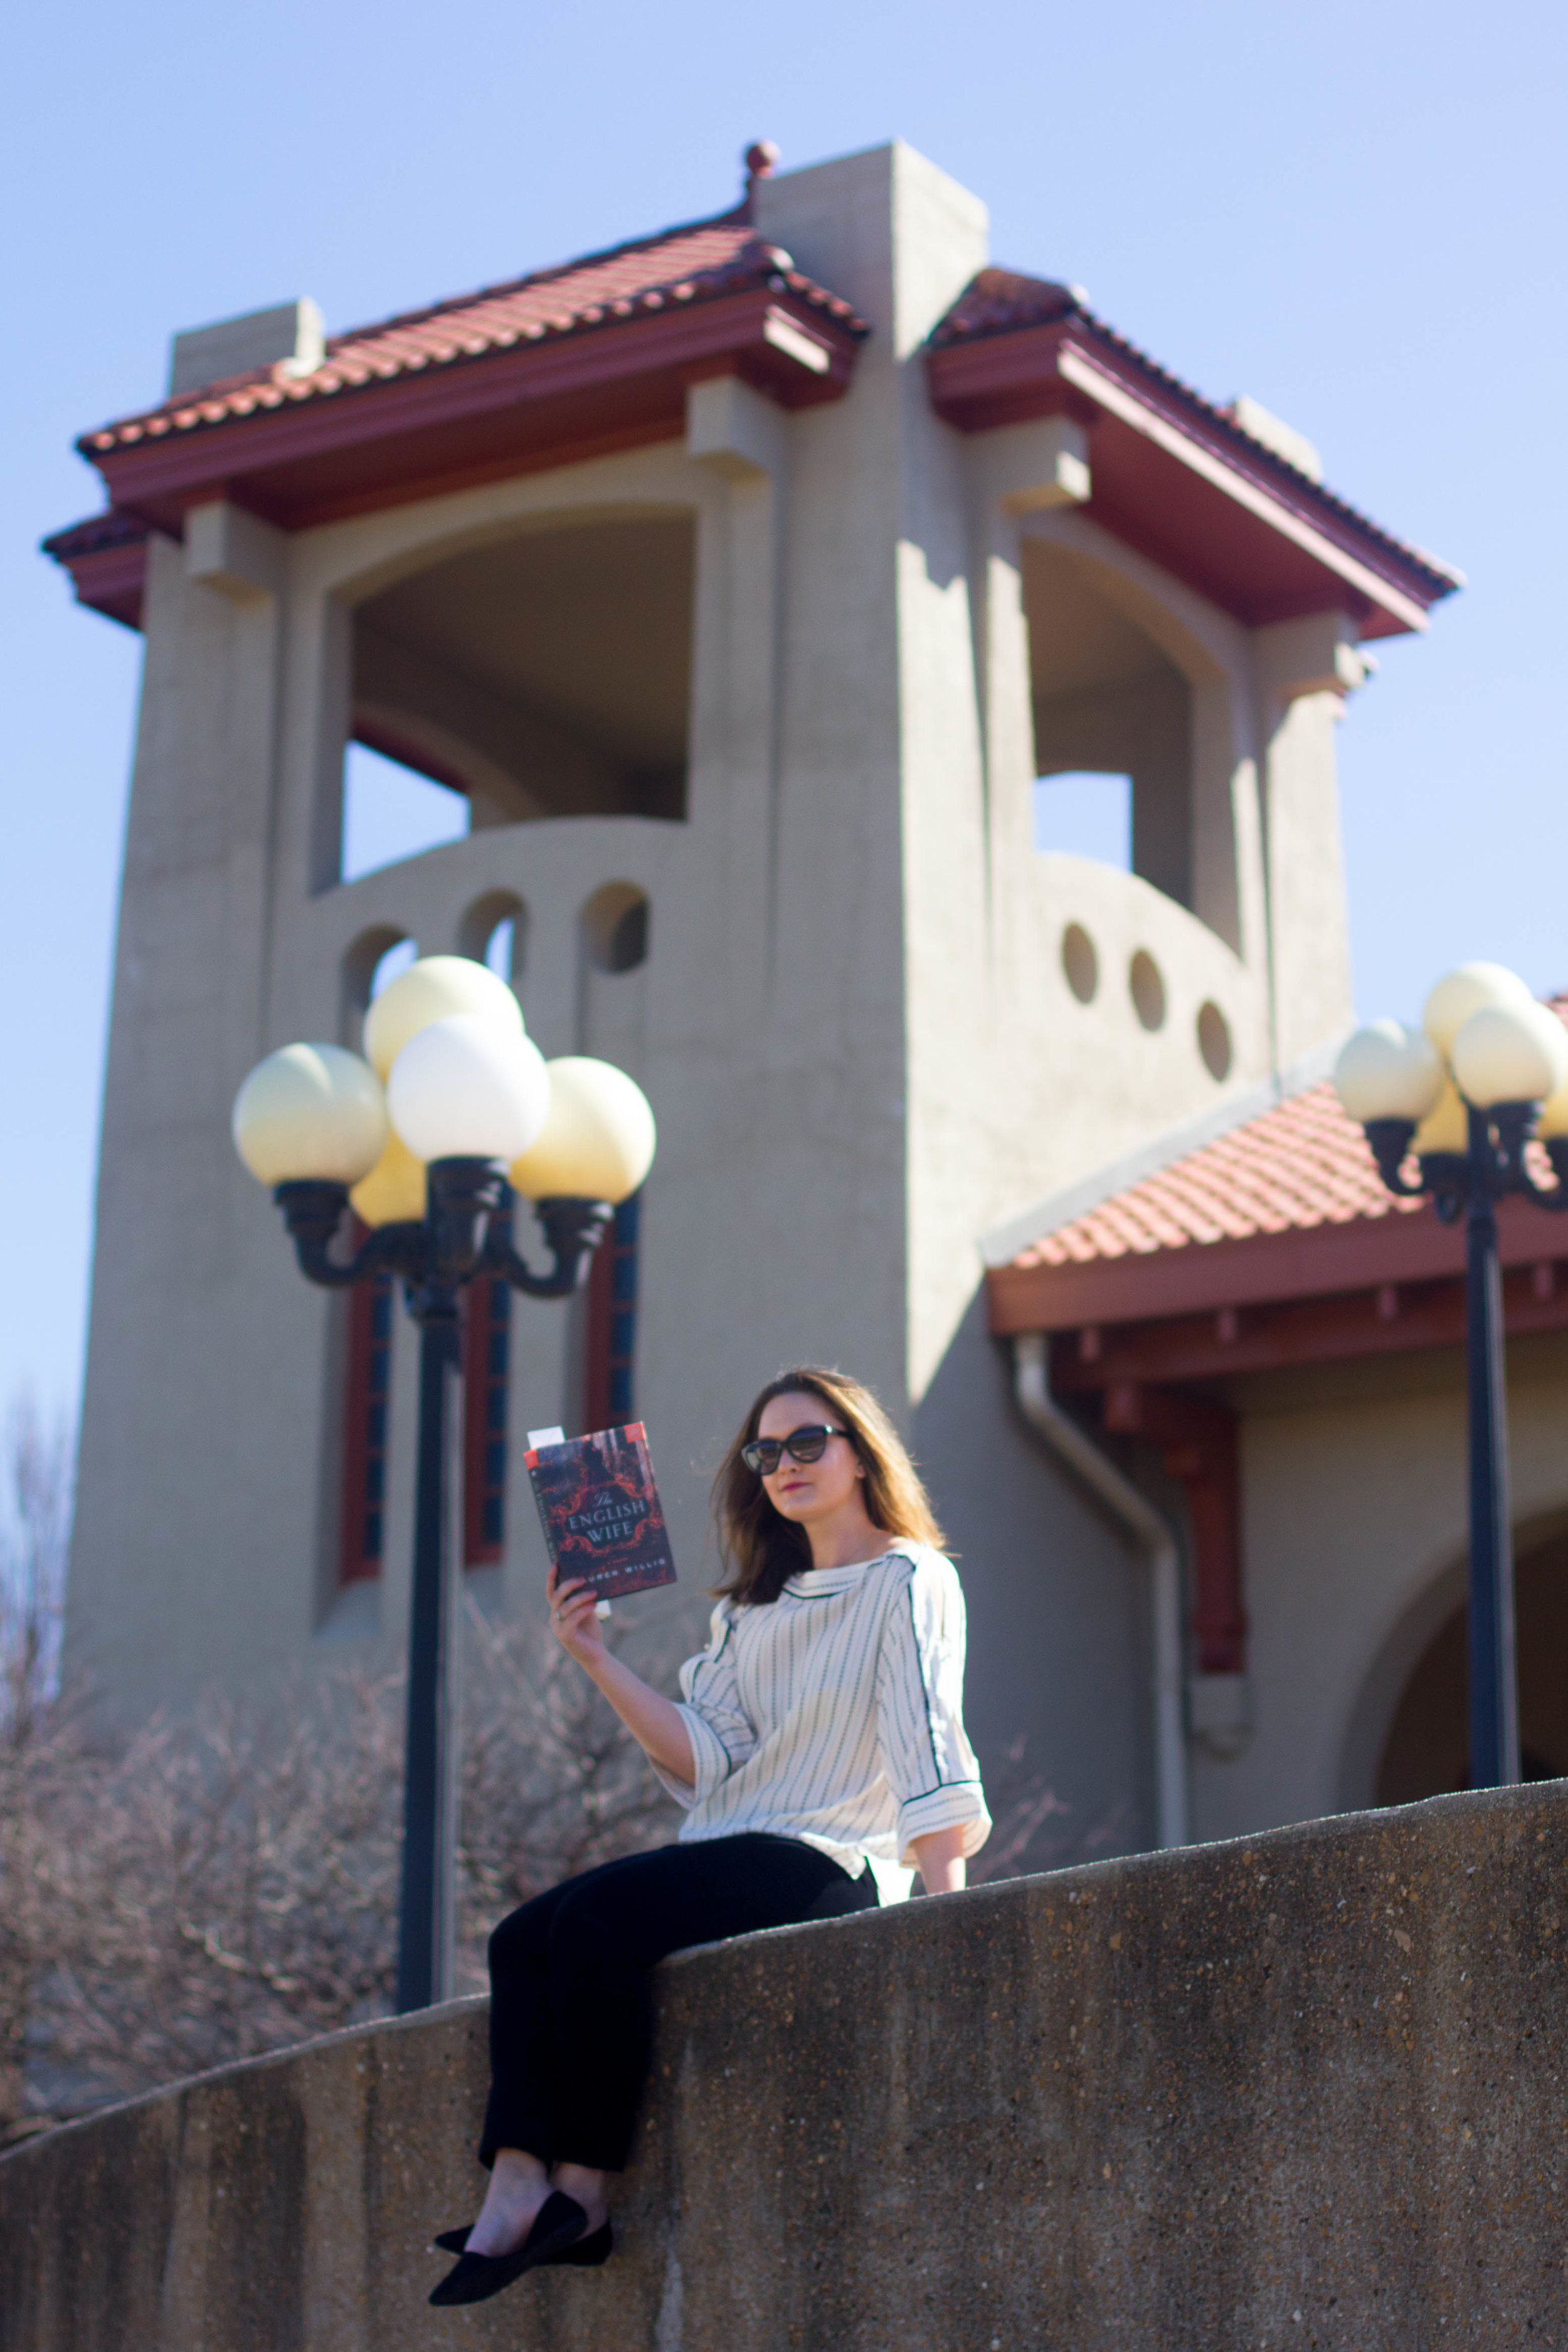 Reading The English Wife by Lauren Willig at the World's Fair Pavilion in St. Louis